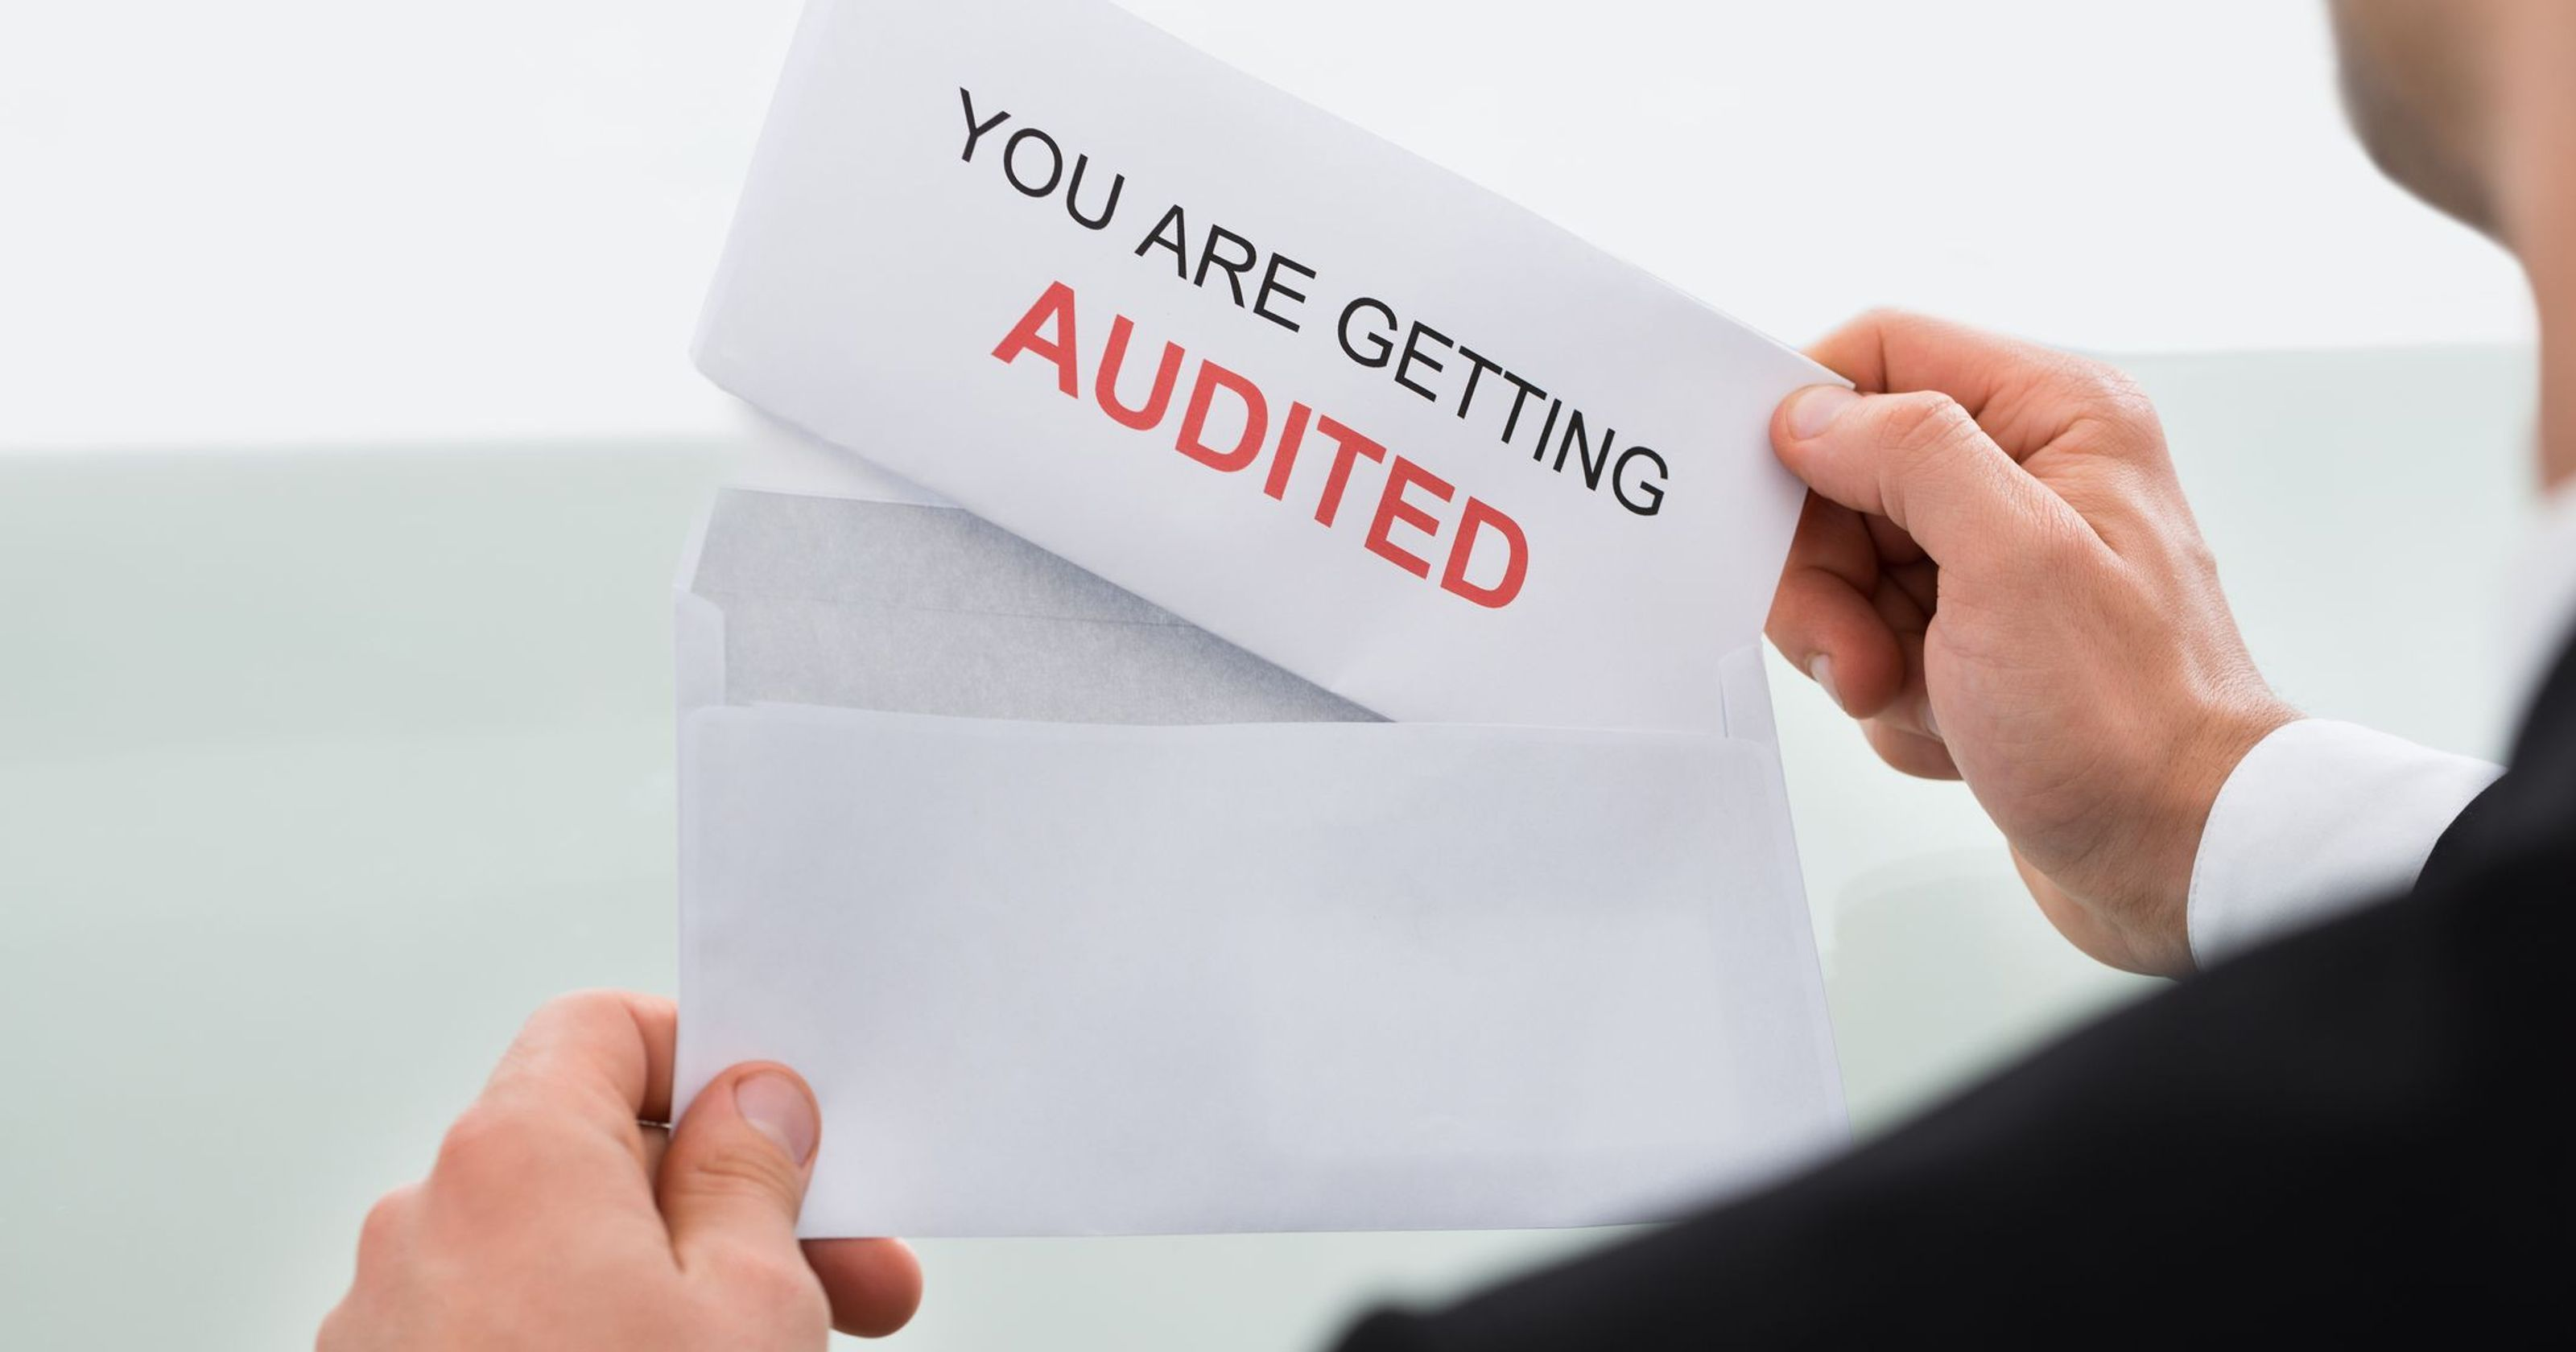 7 taxreporting mistakes that could get you audited by the